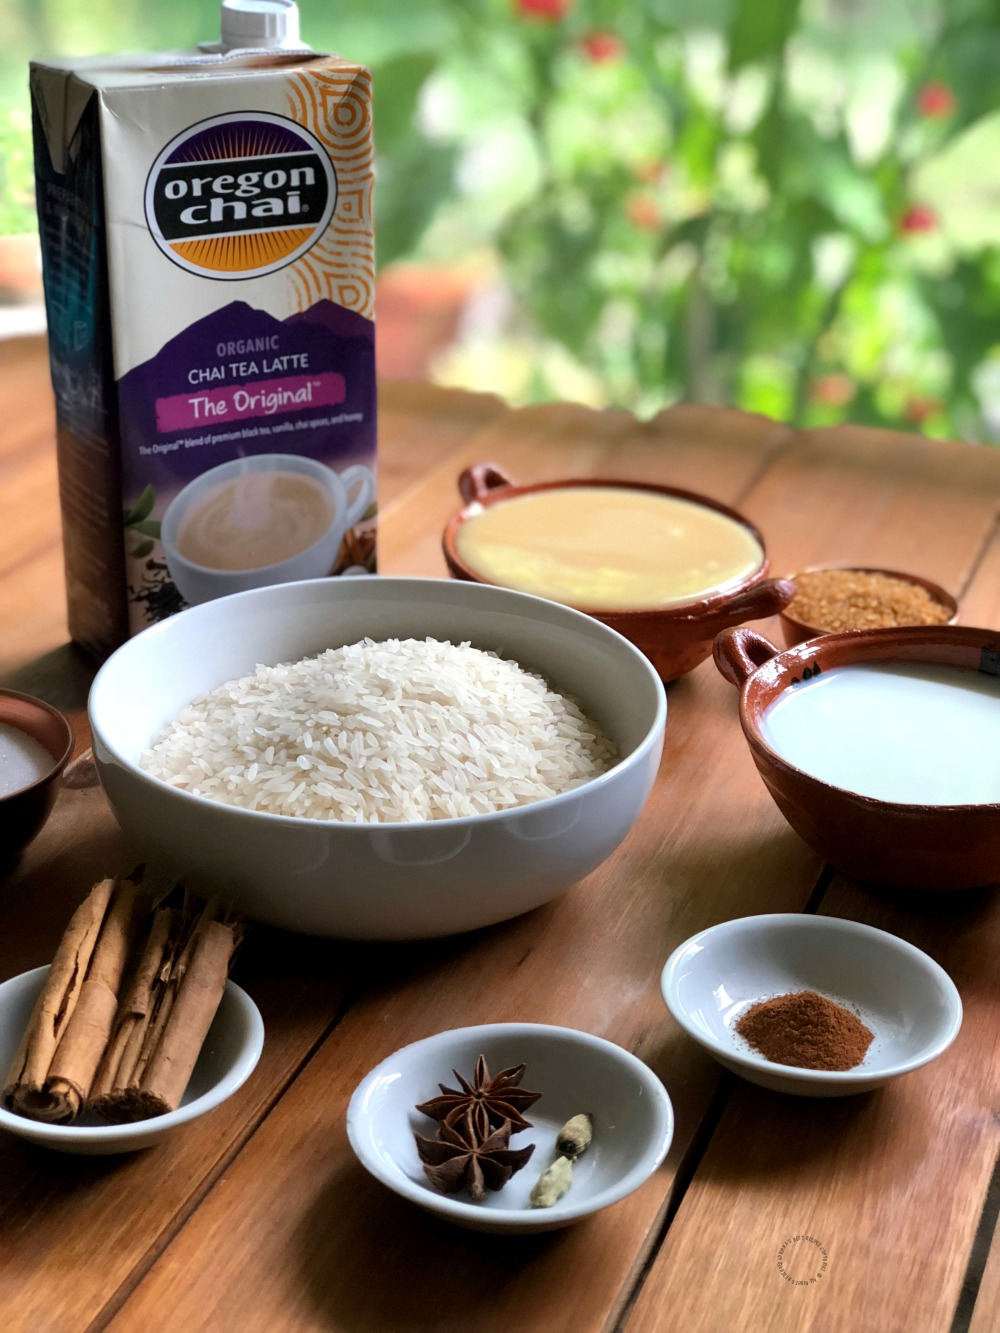 Ingredients for making the Chai Latte Rice Pudding